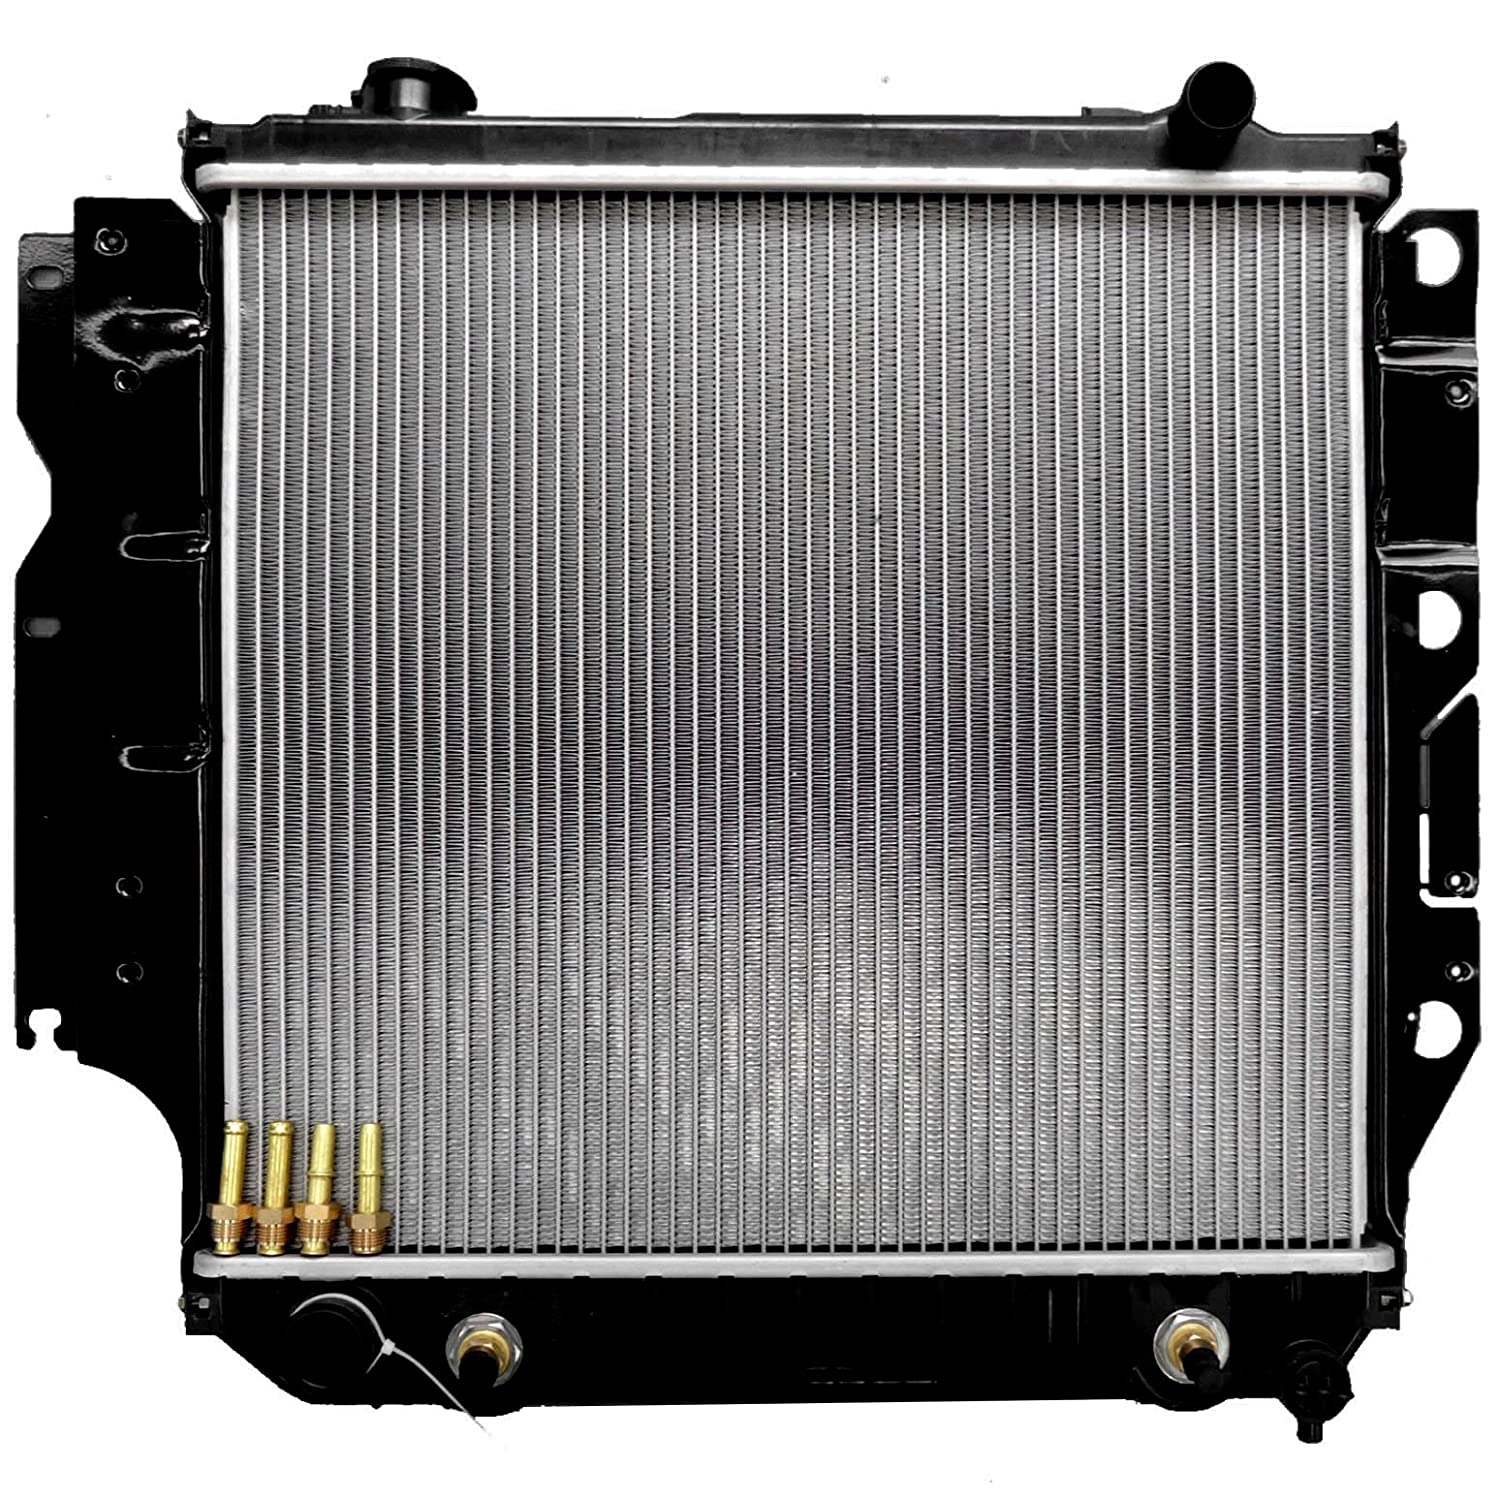 SCITOO Aluminum Radiator 1682 Replacement fit for 1987-2006 Jeep Wrangler 65th Anniversary 069428-5206-1456471993